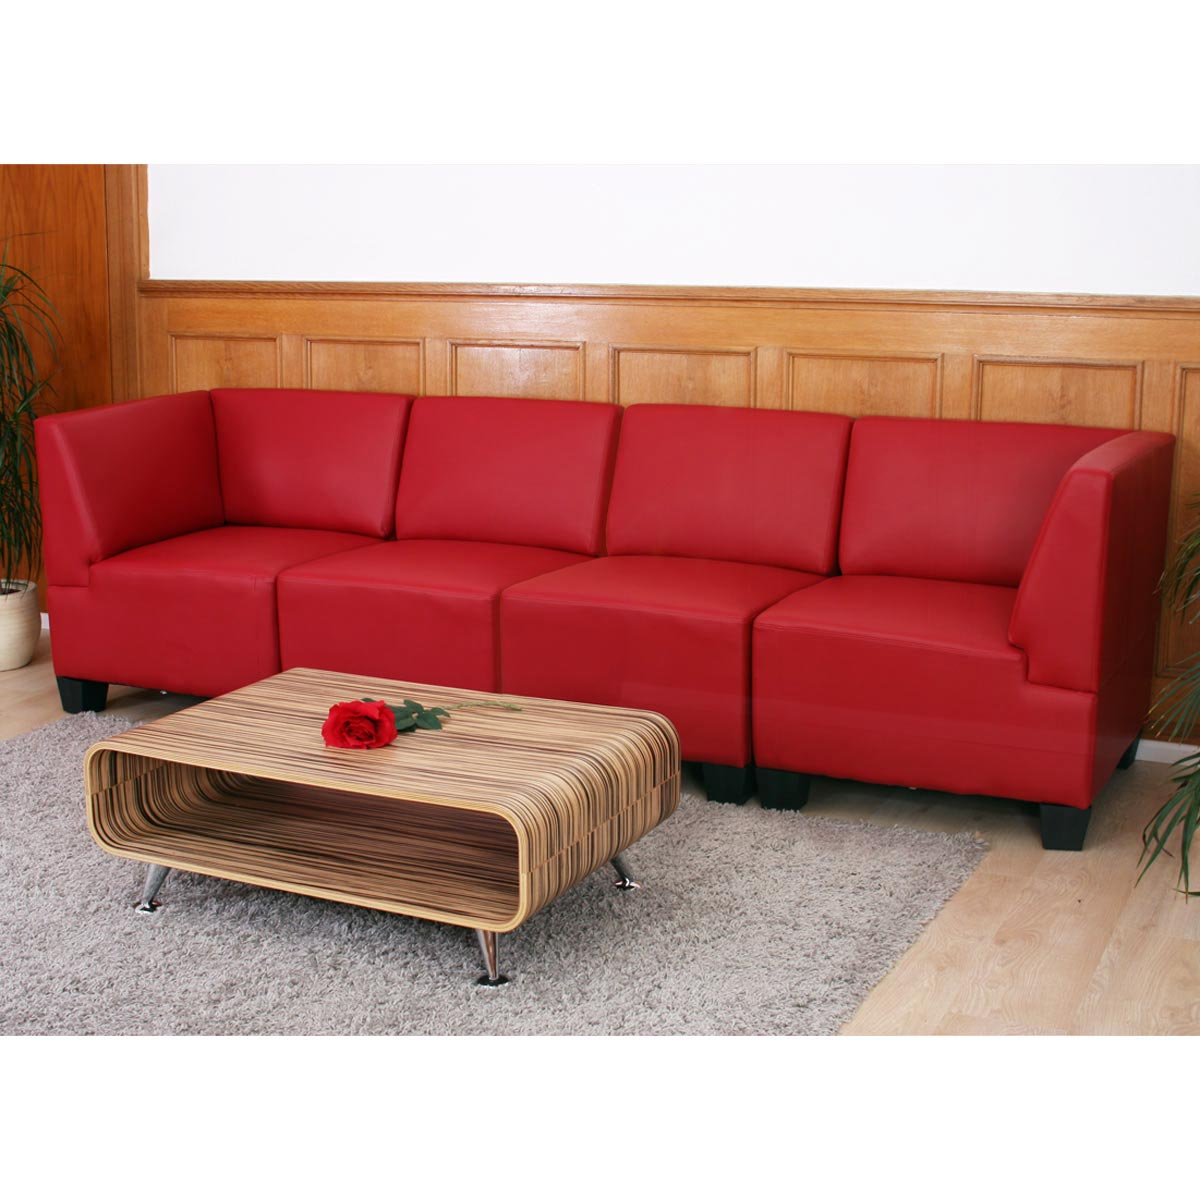 modular viersitzer sofa couch lyon kunstleder schwarz rot creme ebay. Black Bedroom Furniture Sets. Home Design Ideas